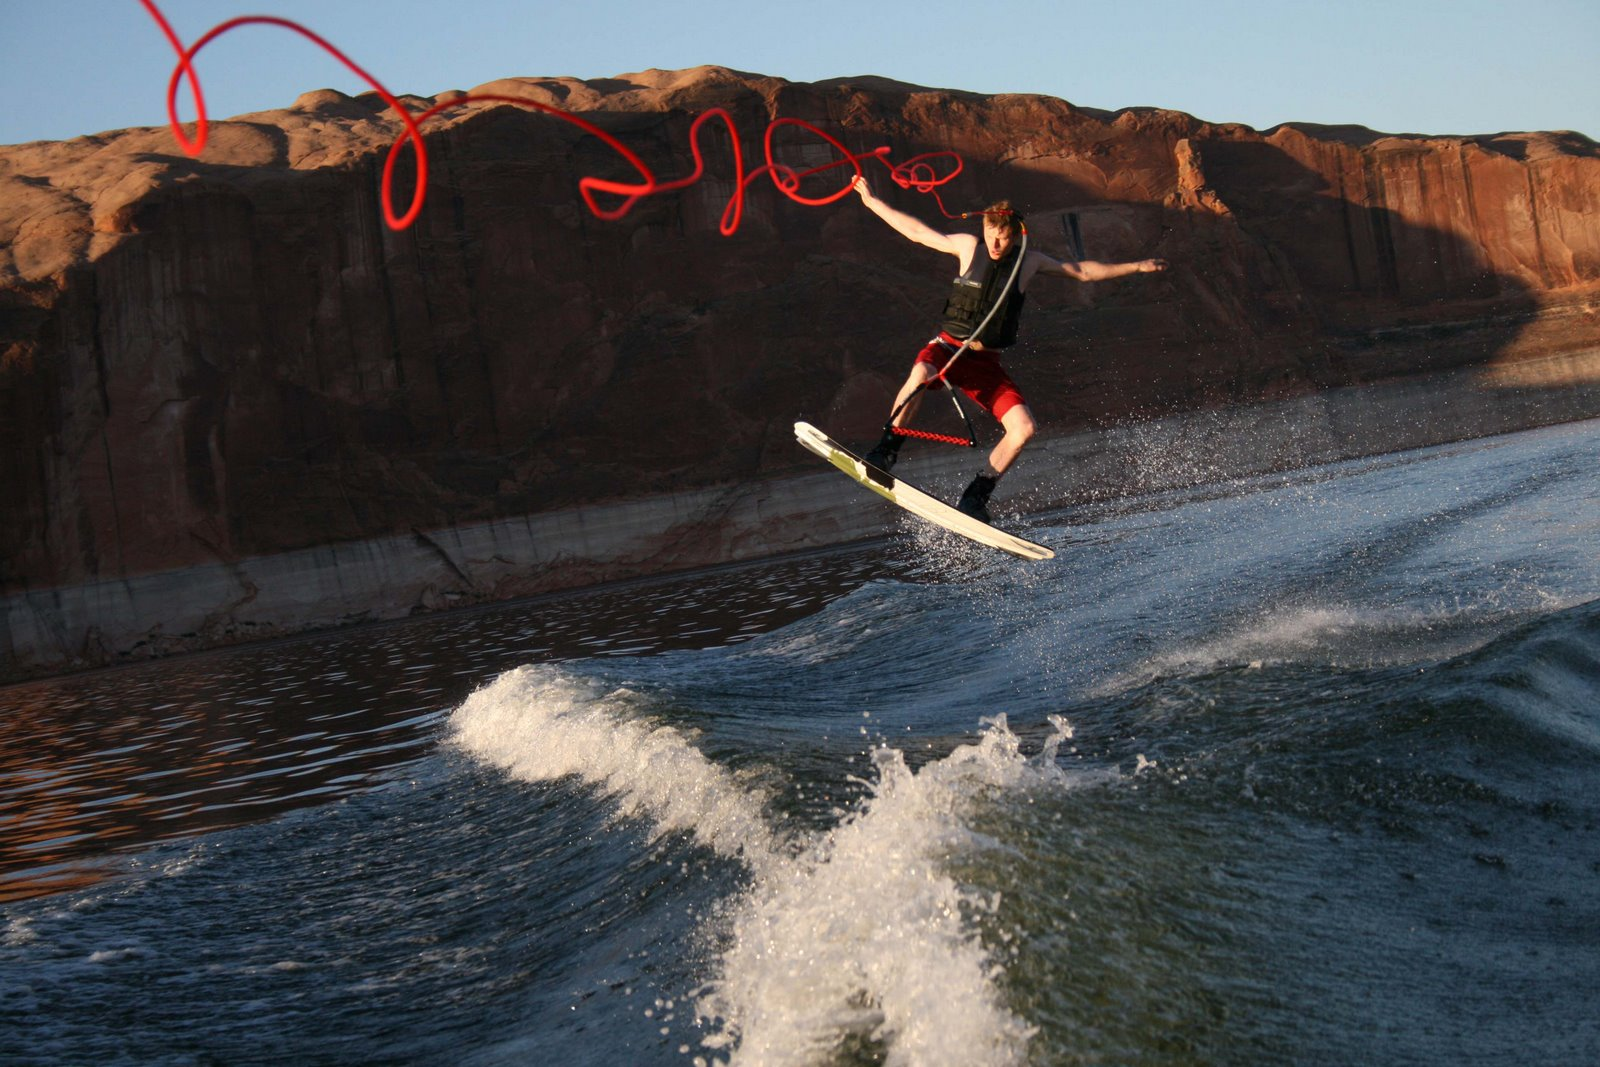 [Rich+wake+boarding+quit-+cool+line]